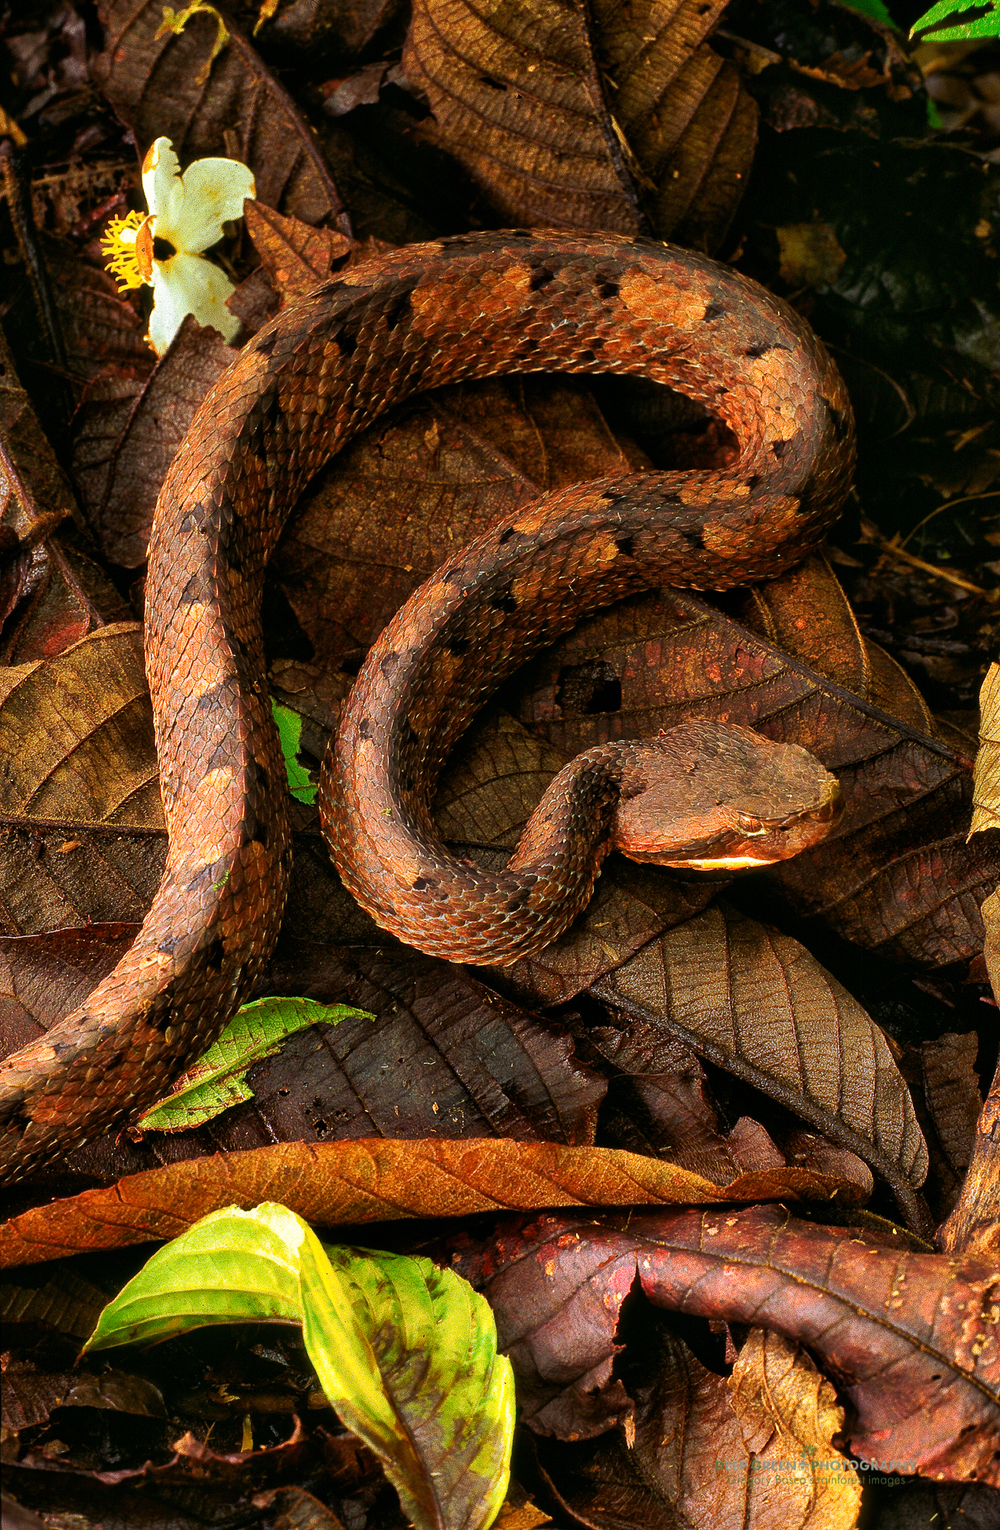 Hog-nosed rainforest pit viper (Porthidium nasutum)